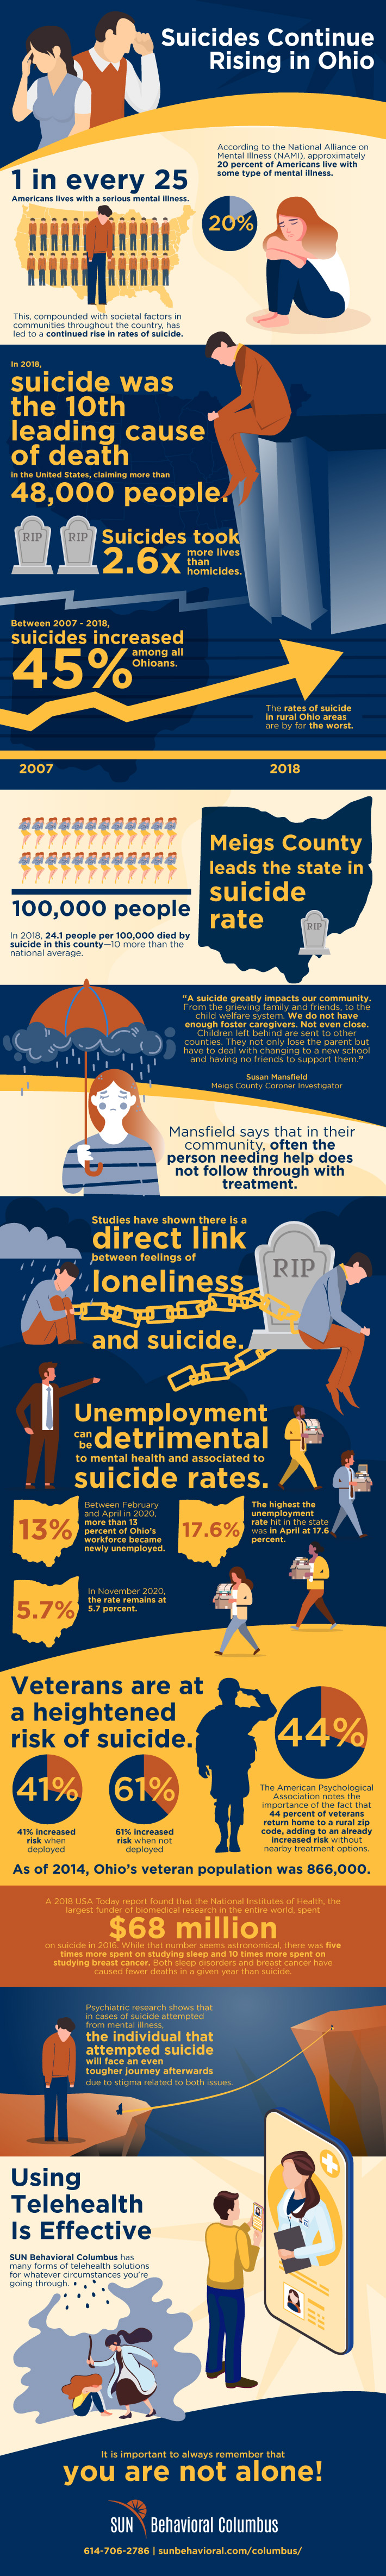 SUN OH Suicide Infographic